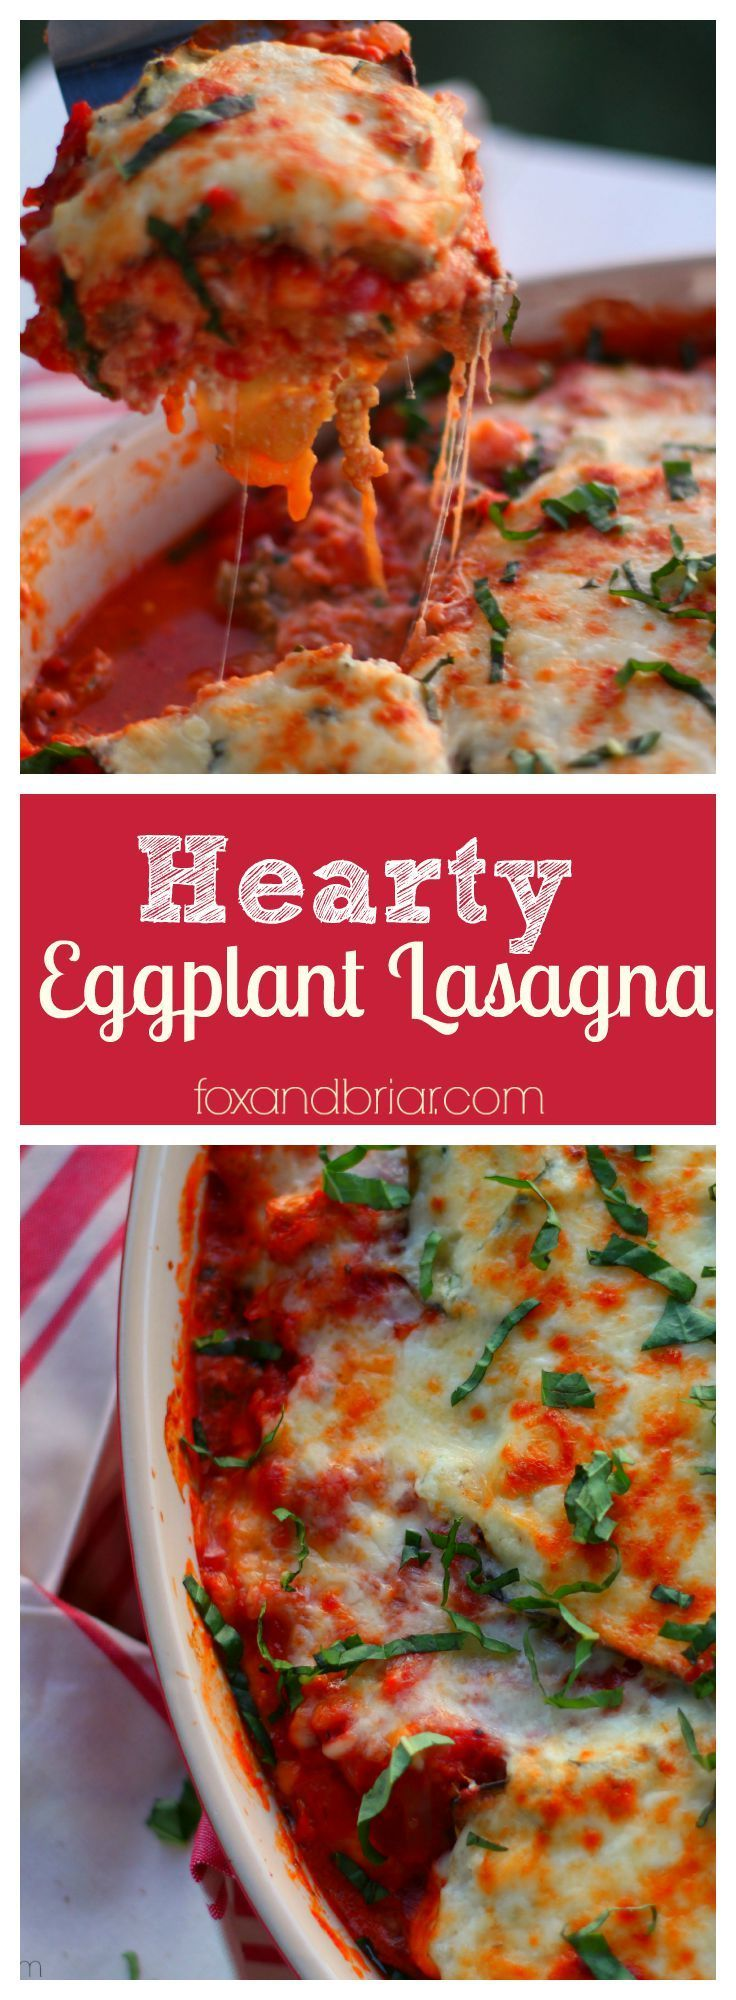 This hearty lasagna uses eggplant instead of pasta. A rich and meaty sauce and creamy cheese make for a satisfying dinner. You won't even miss the pasta.